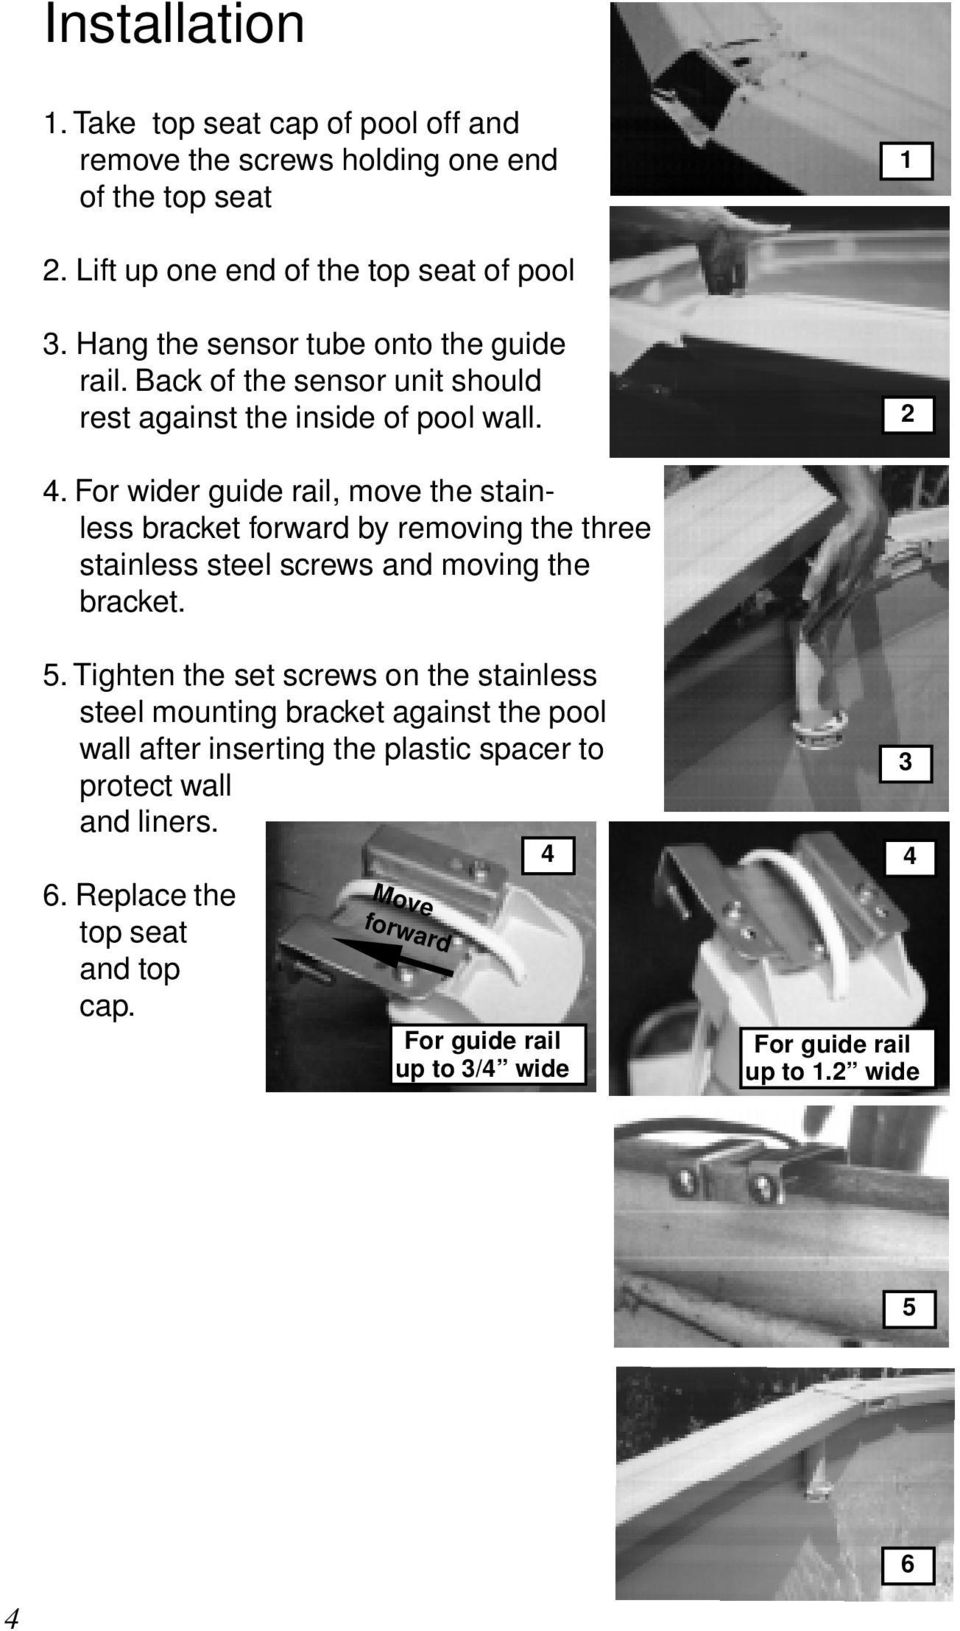 For wider guide rail, move the stainless bracket forward by removing the three stainless steel screws and moving the bracket. 5.